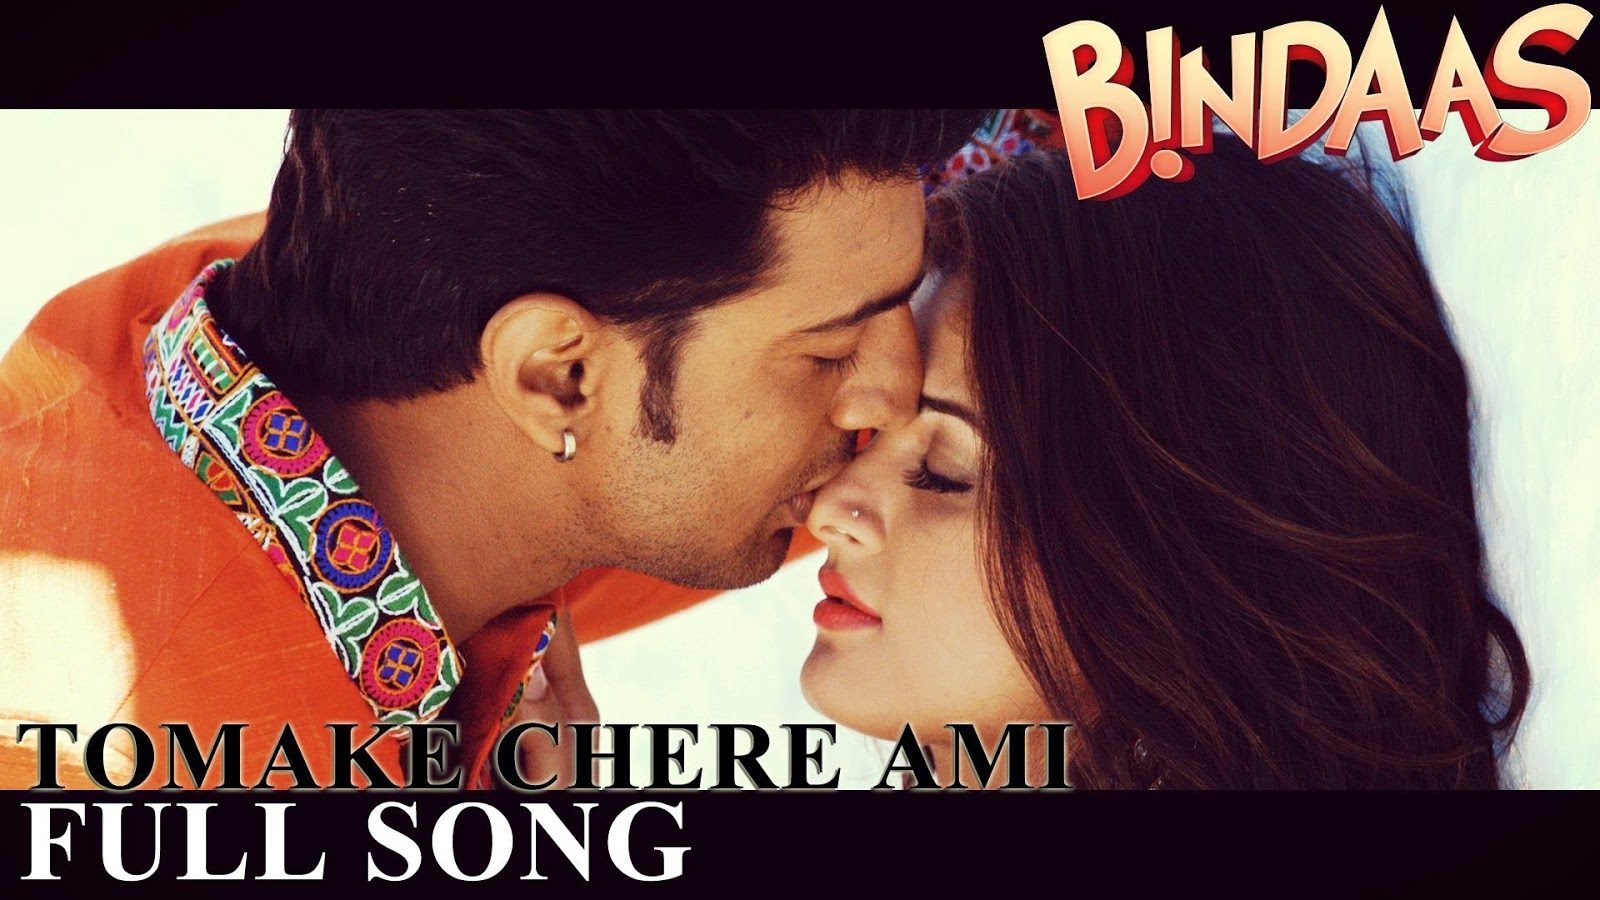 Tomake Chere Ami - Bindaas (2014) Music Video